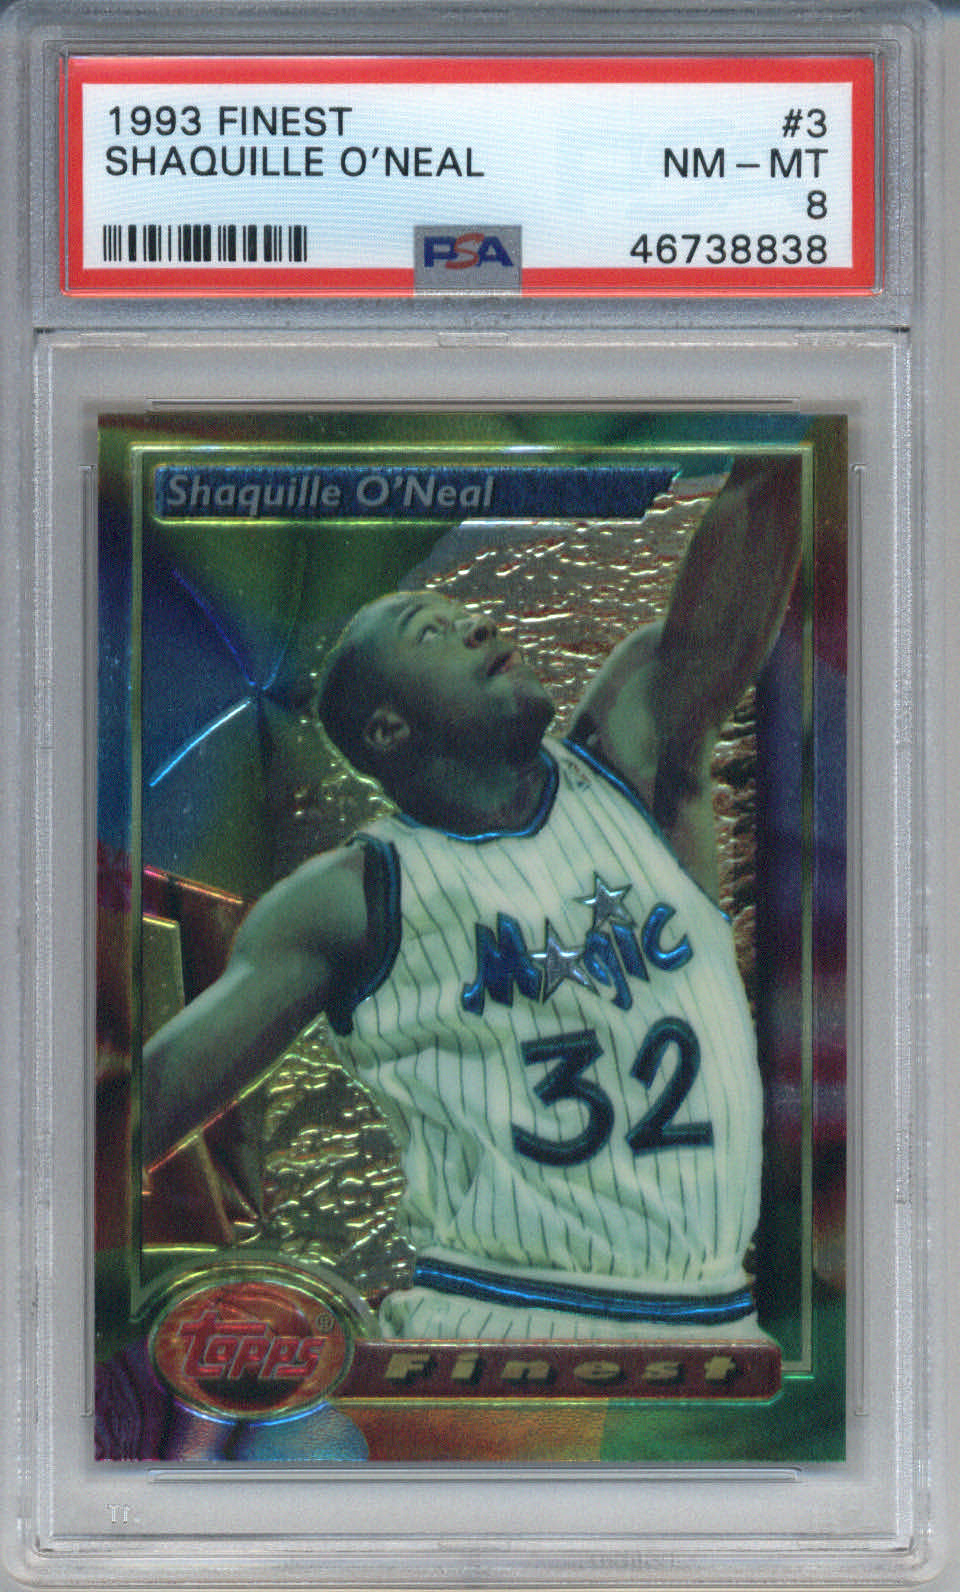 1993 Finest #3 Shaquille O'Neal PSA 8